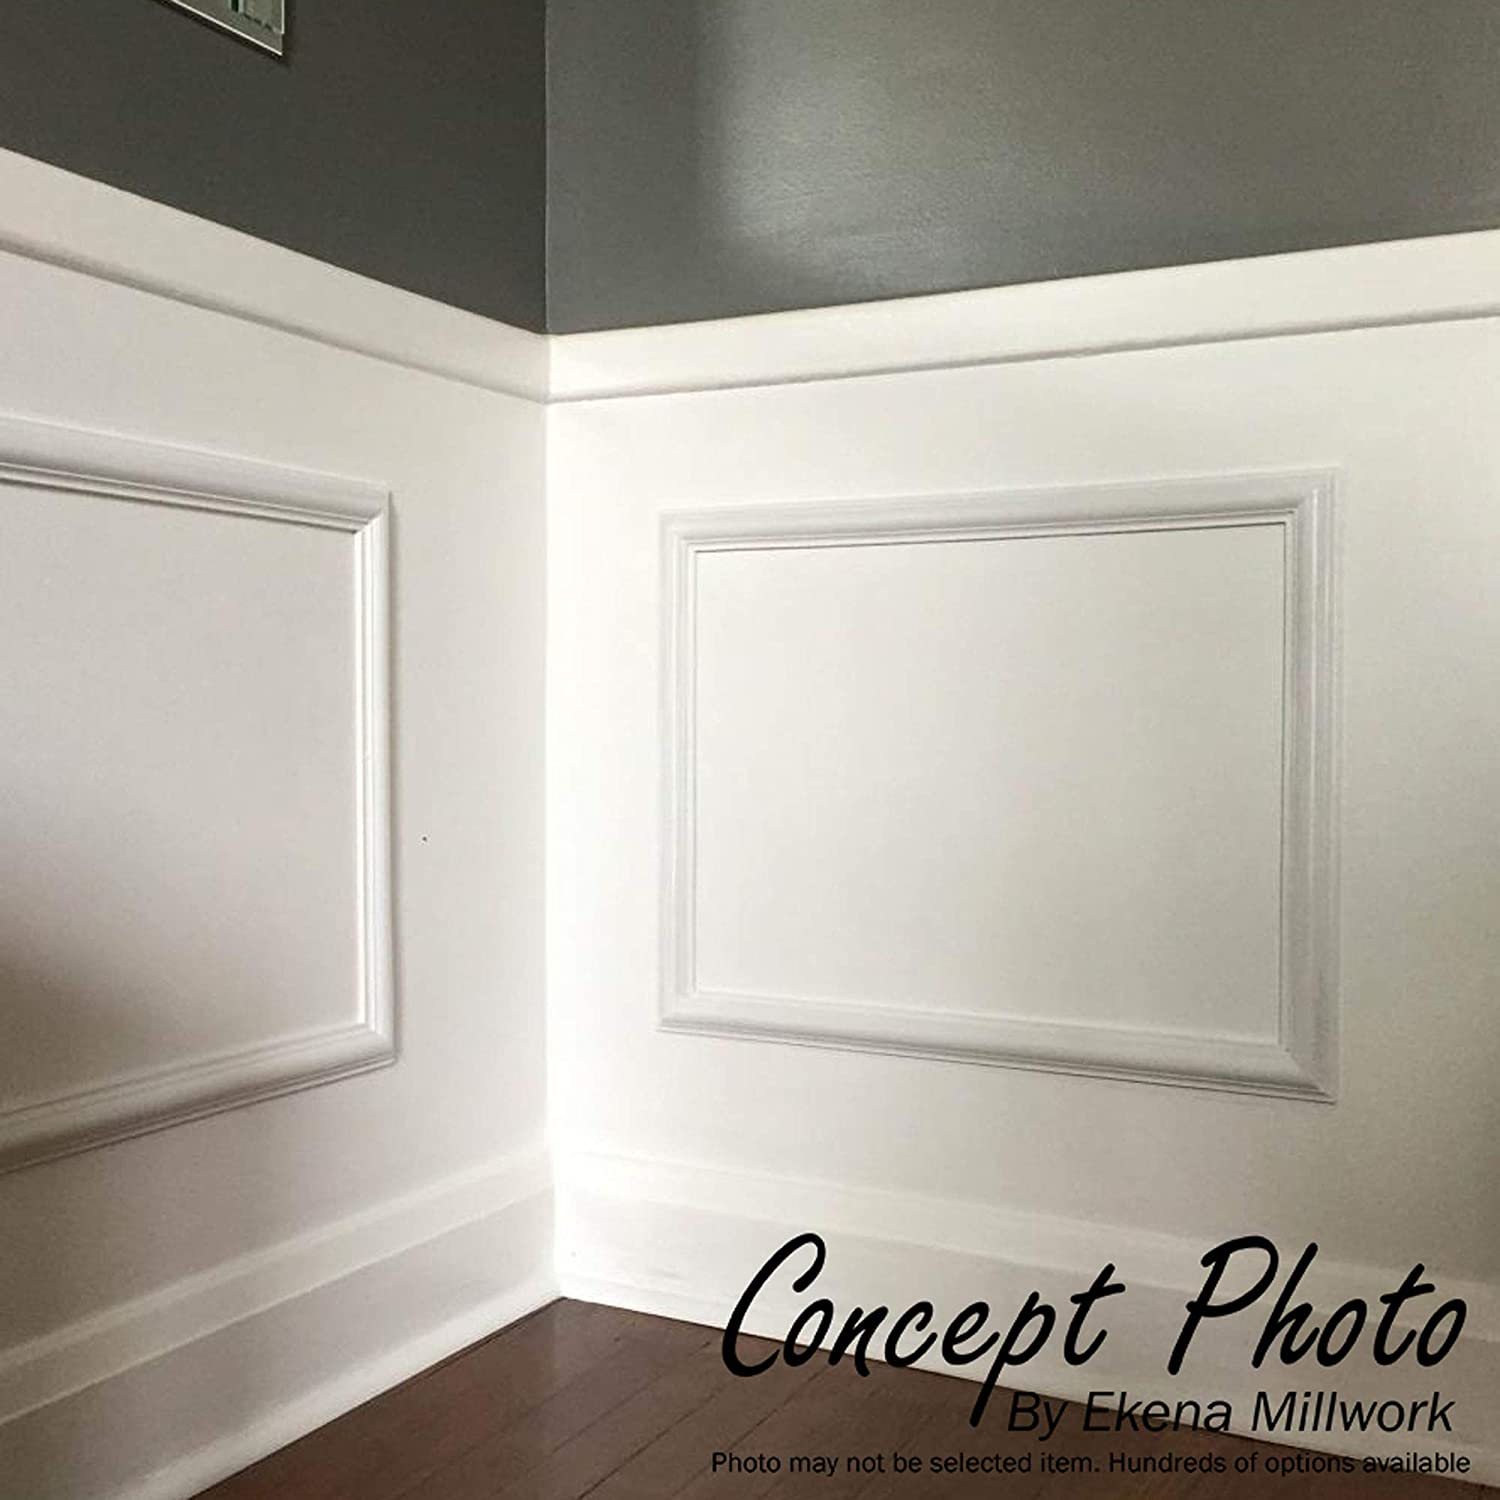 Ekena Millwork PNL12X20AS-02 12W x 20H x 1//2P Ashford Molded Scalloped Wainscot Wall Panel